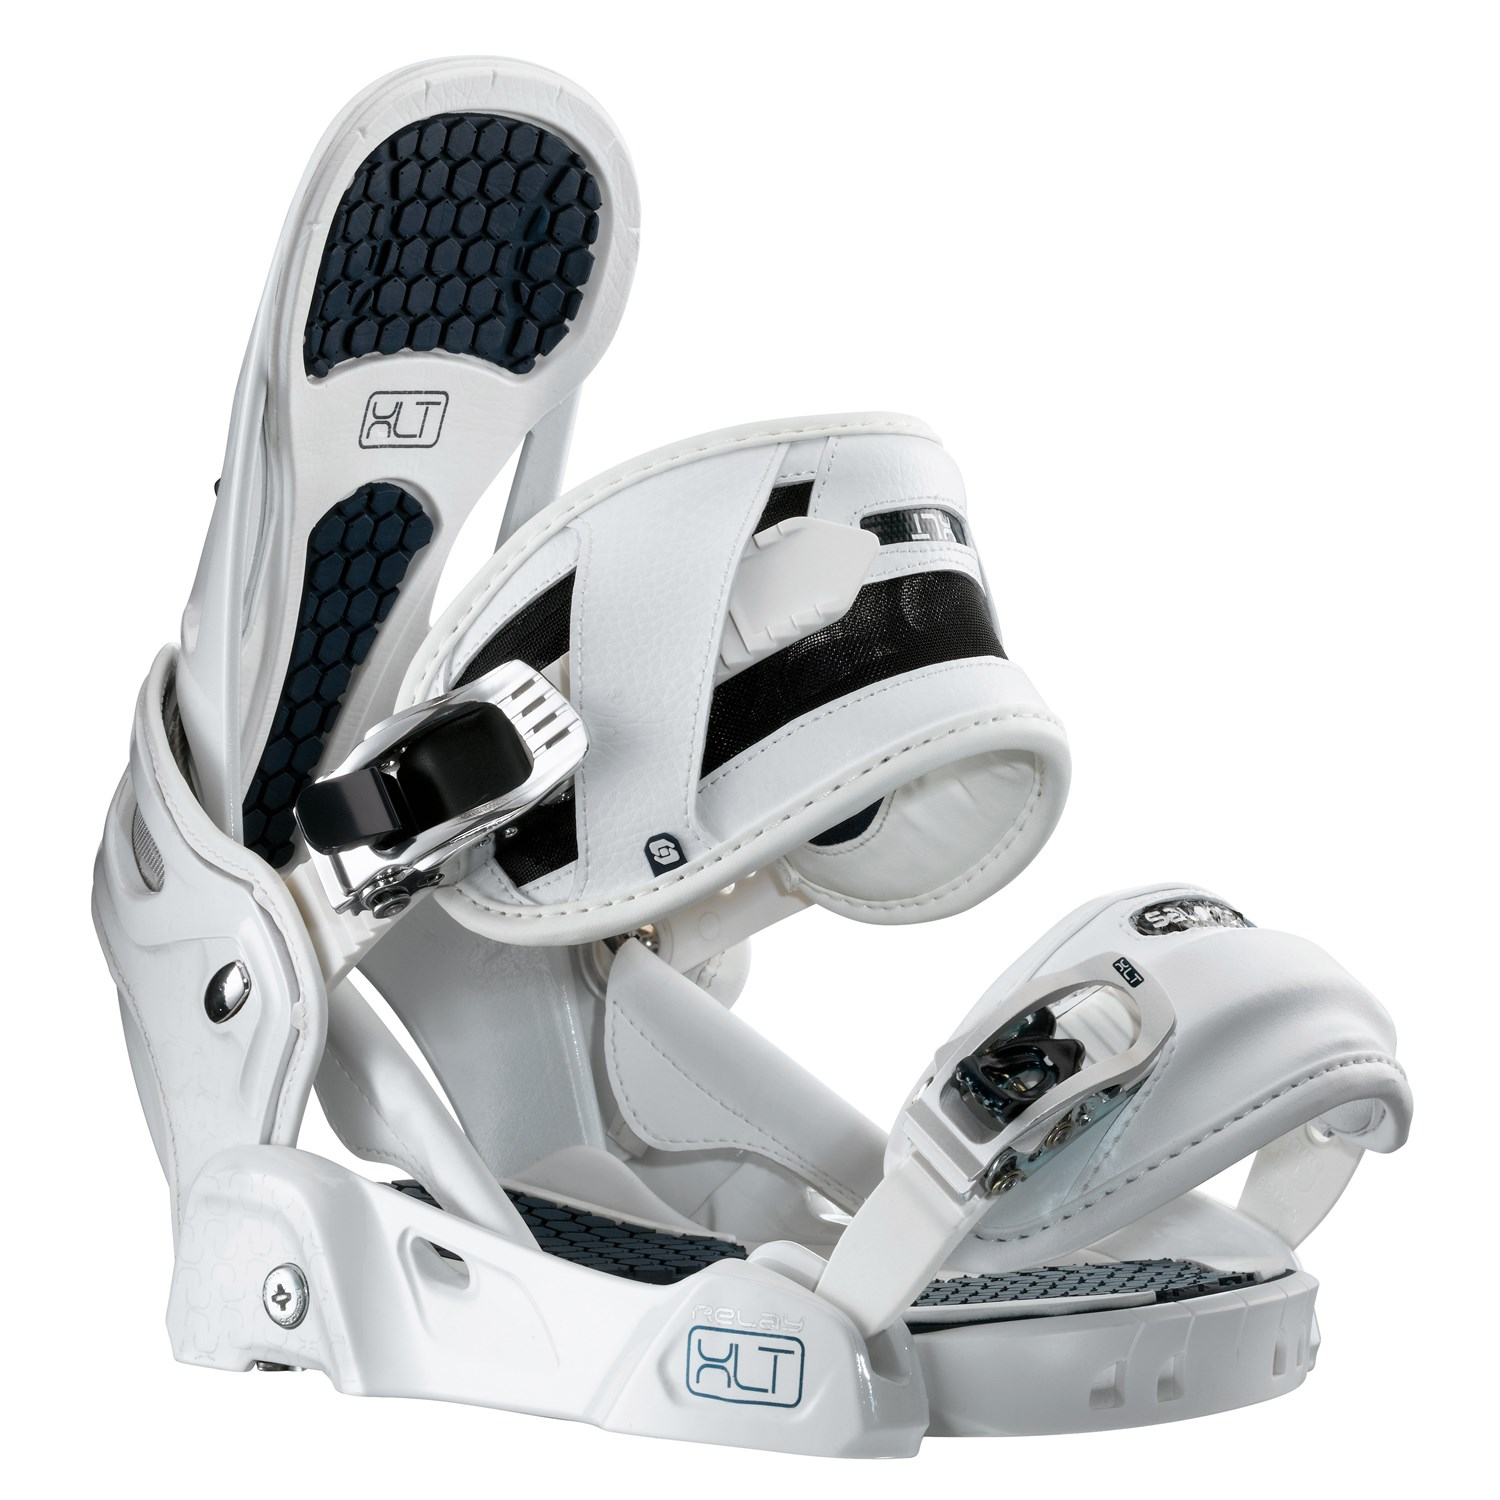 Salomon Relay XLT Snowboard Bindings  Evo Outlet - Basic http relay binding